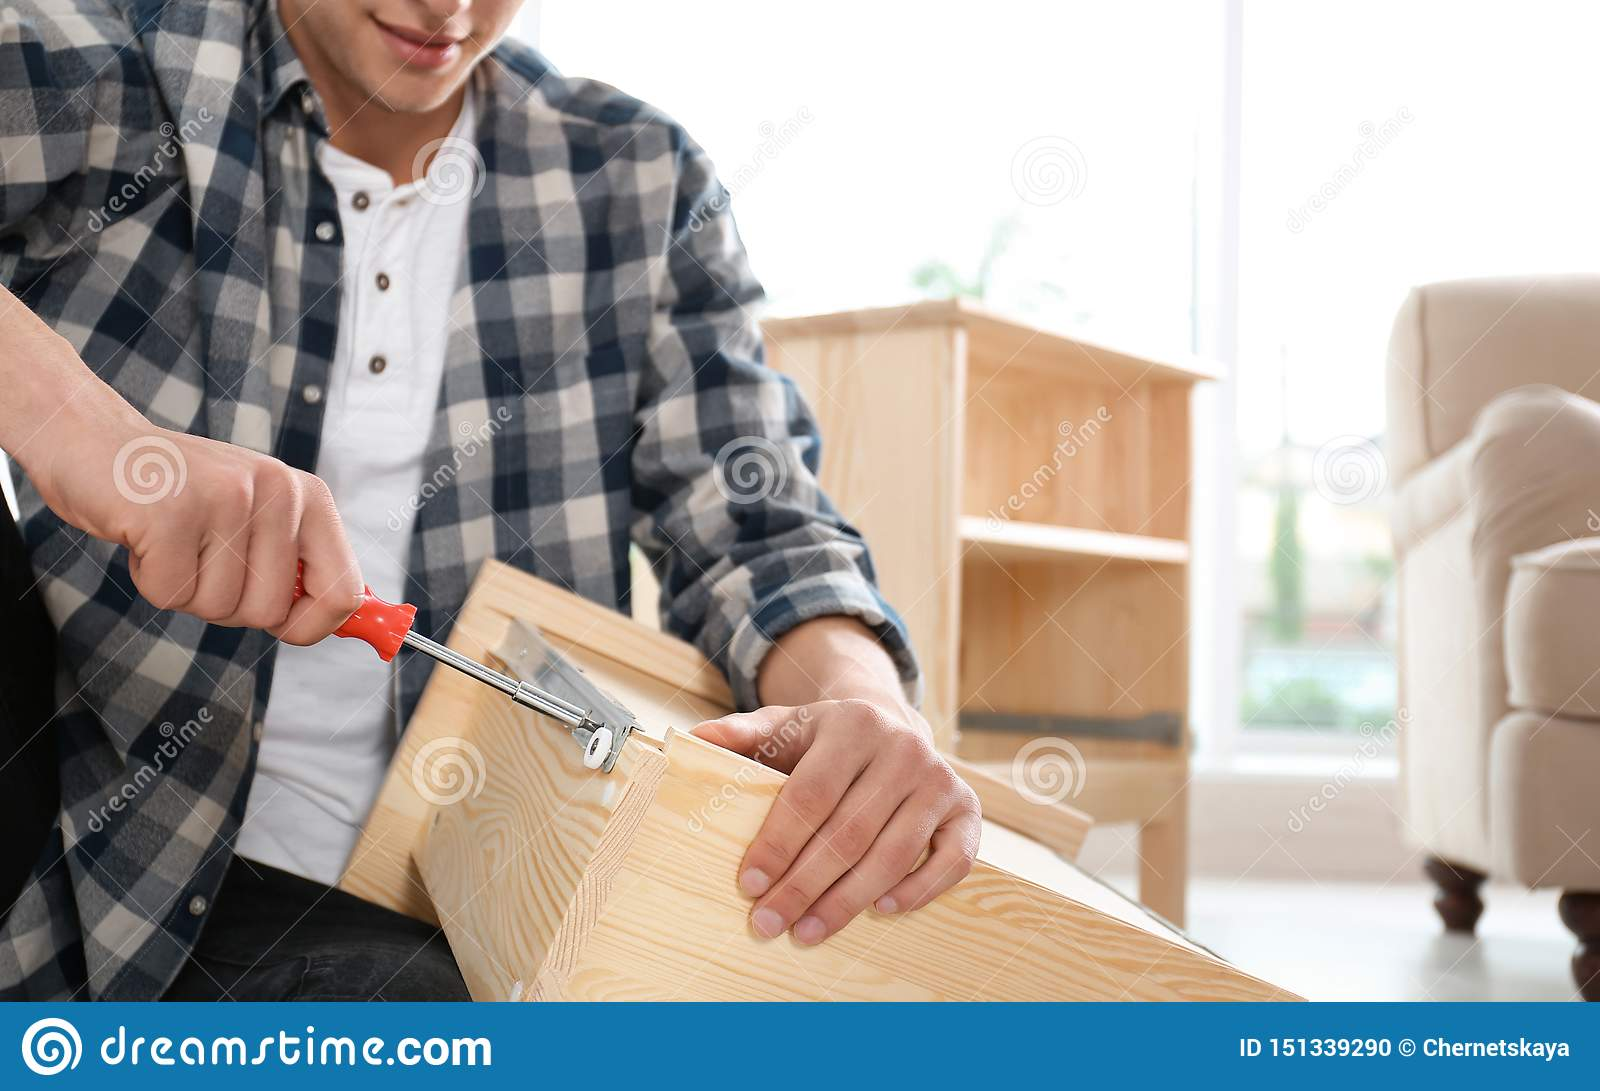 Man working with drawer indoors. Space for text